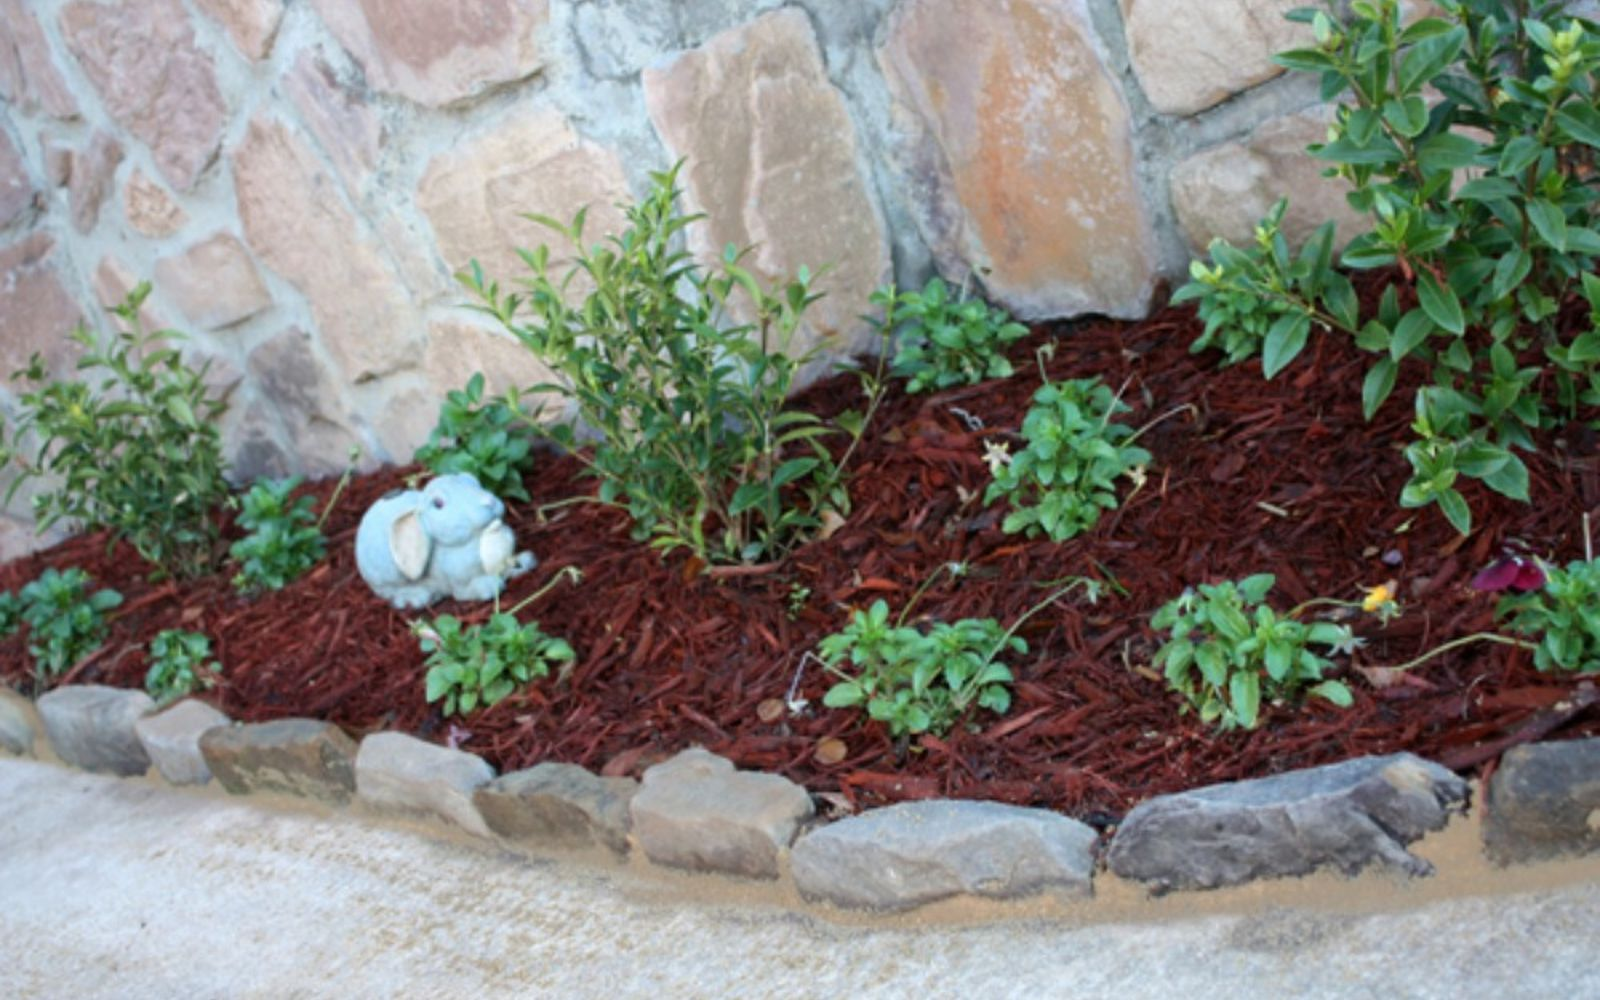 s 11 impressive ways to update your home with stone, concrete masonry, home decor, Create a pretty landscape edging